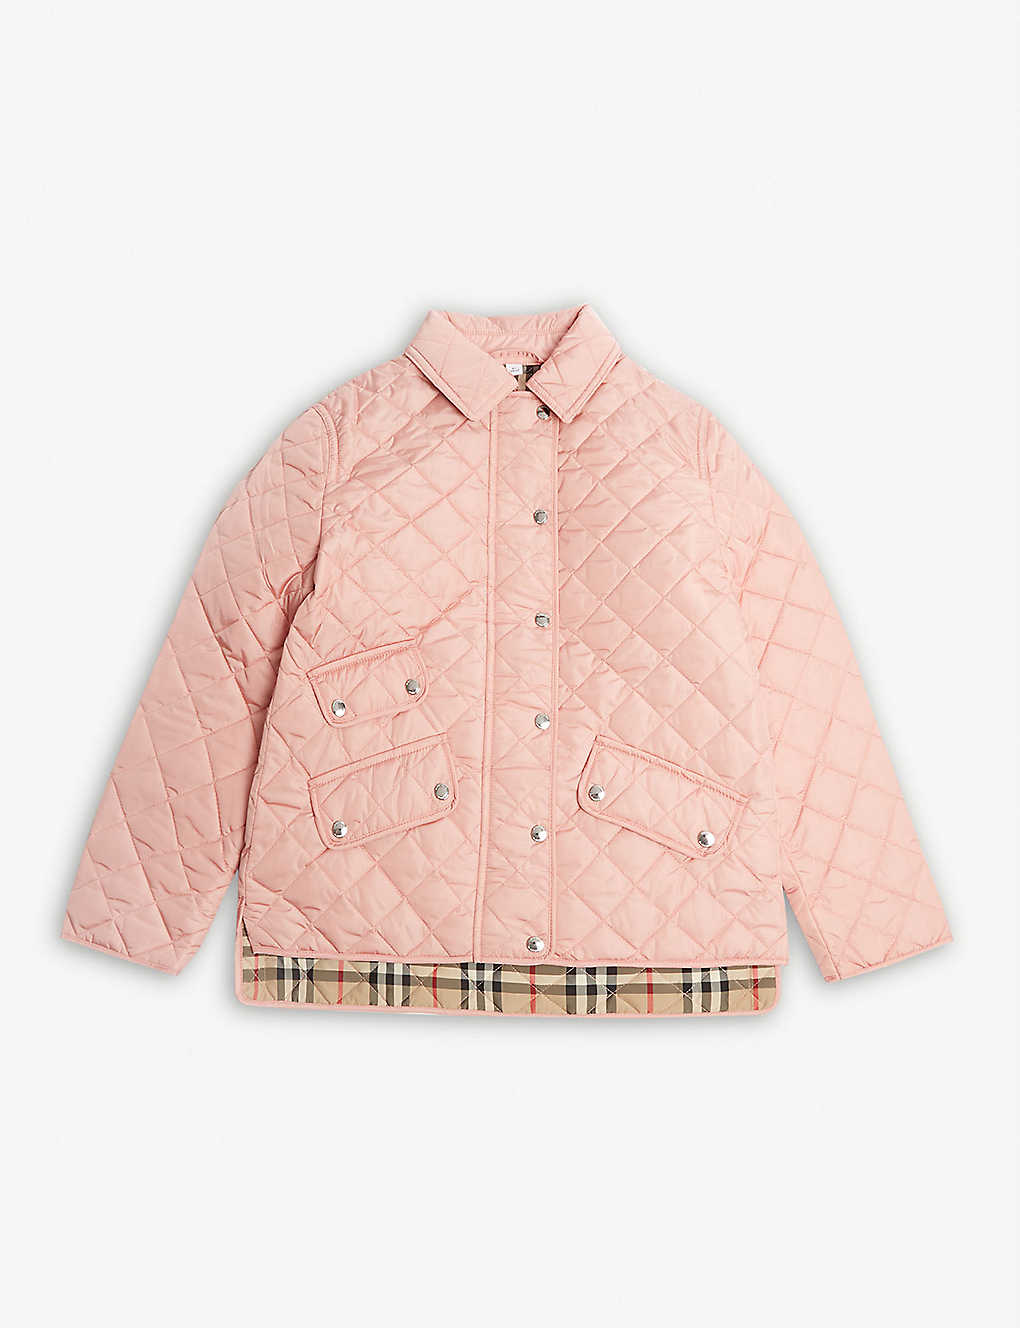 BURBERRY: Brennan diamond quilted jacket 3-14 years